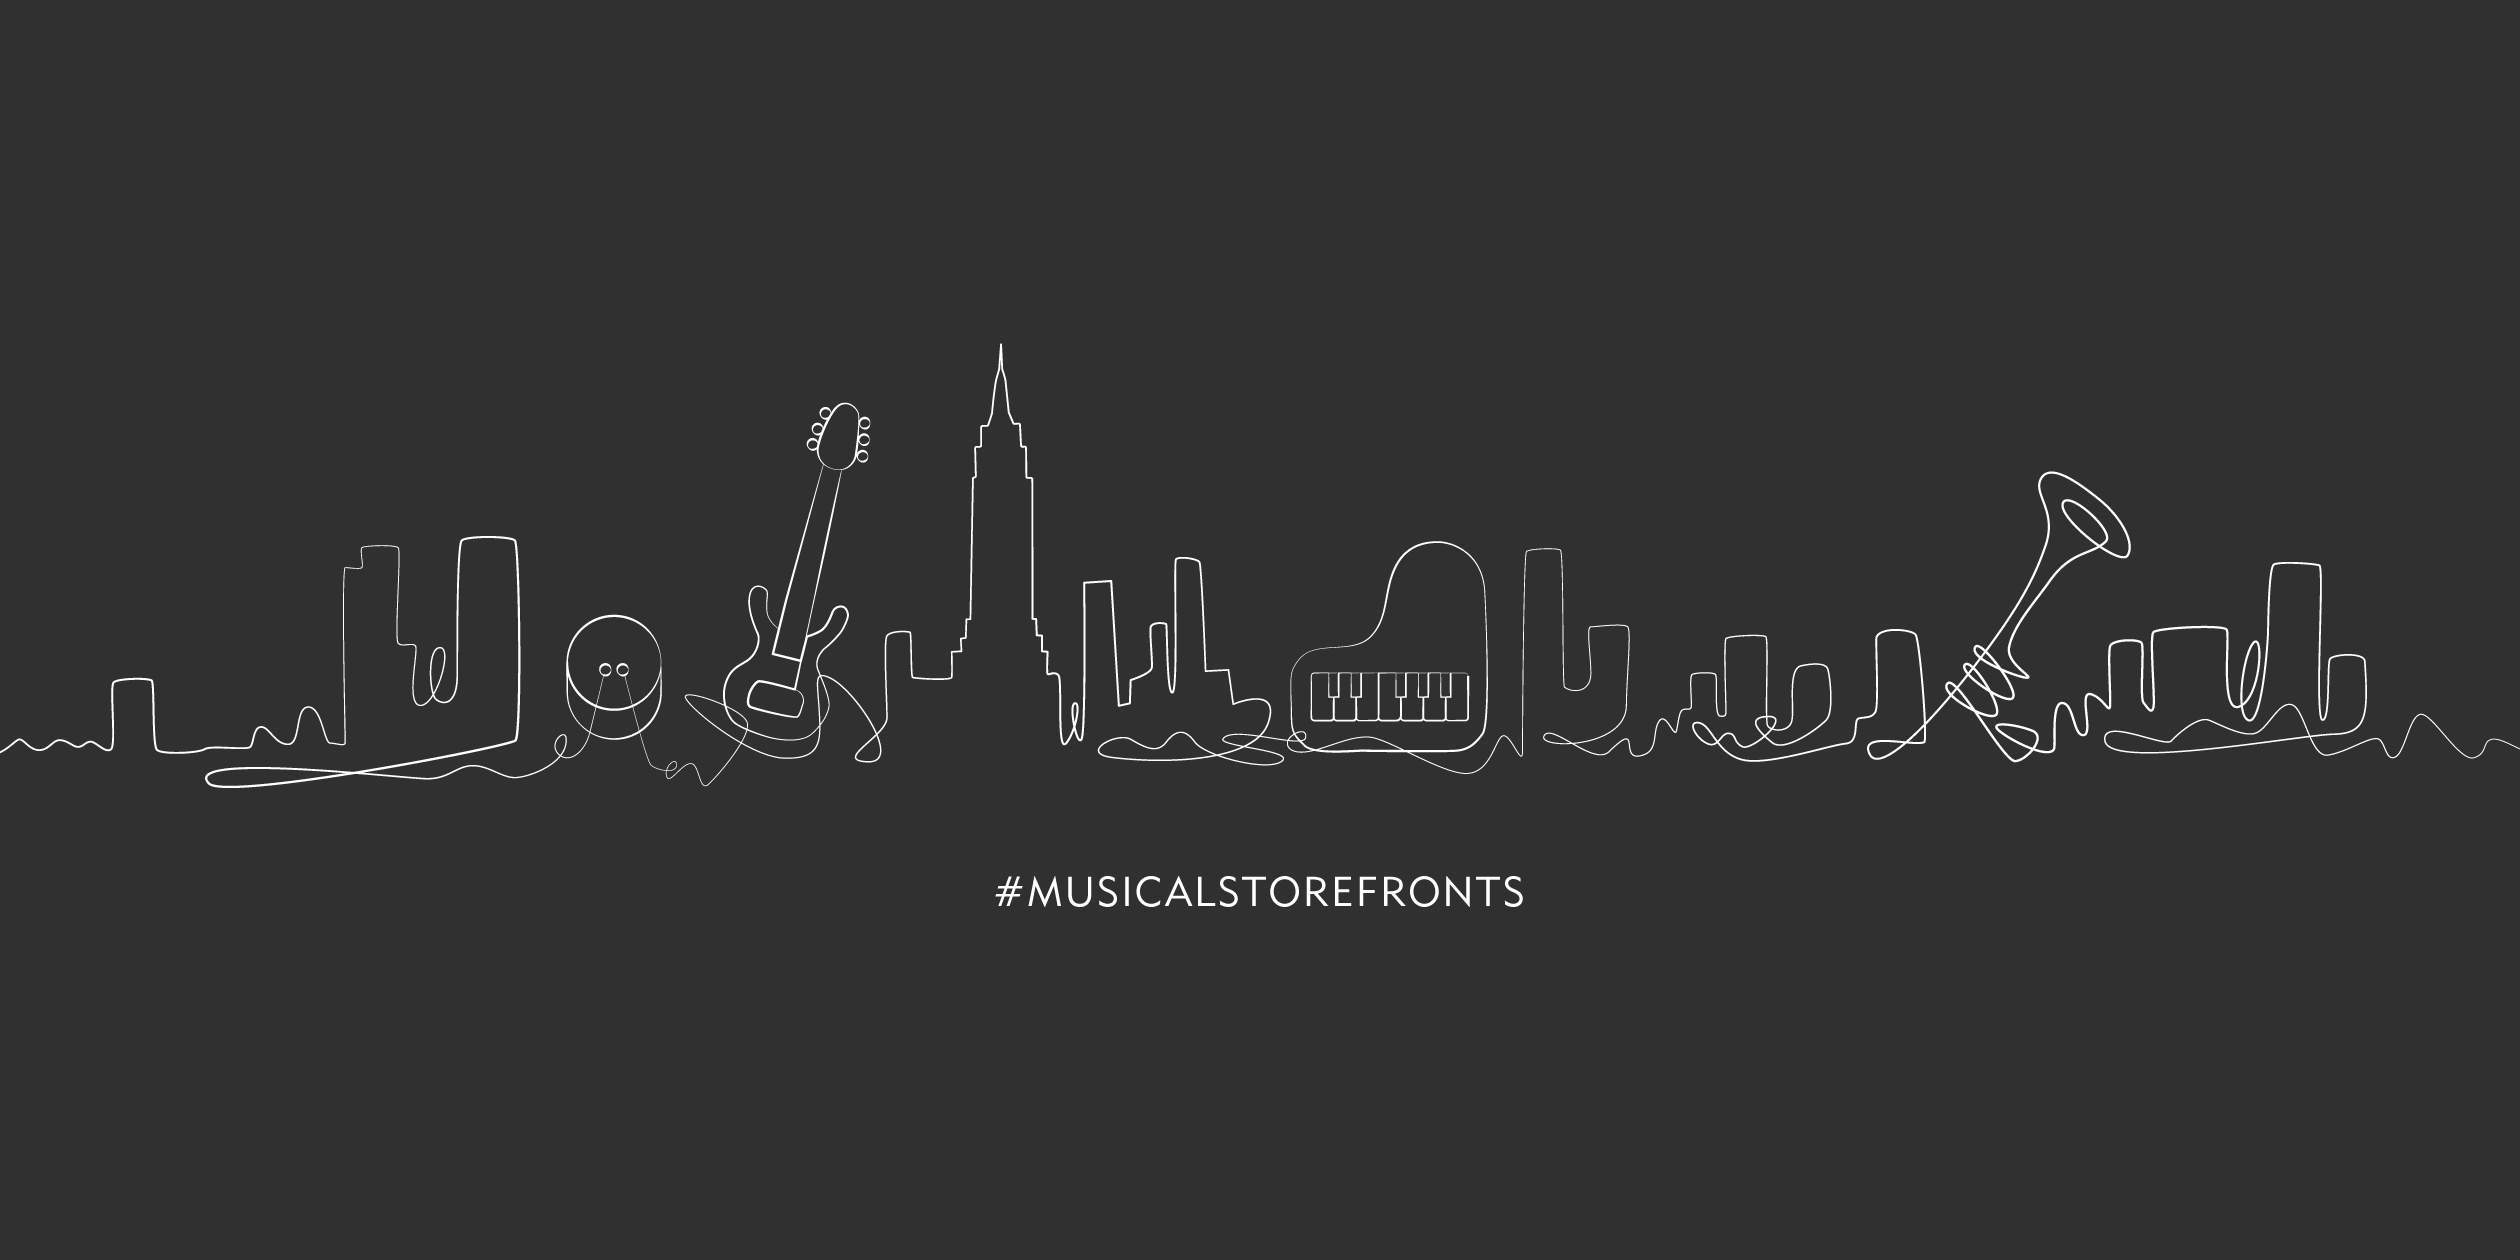 Musical Storefronts – Bringing Live Music (Safely) Back to NYC!